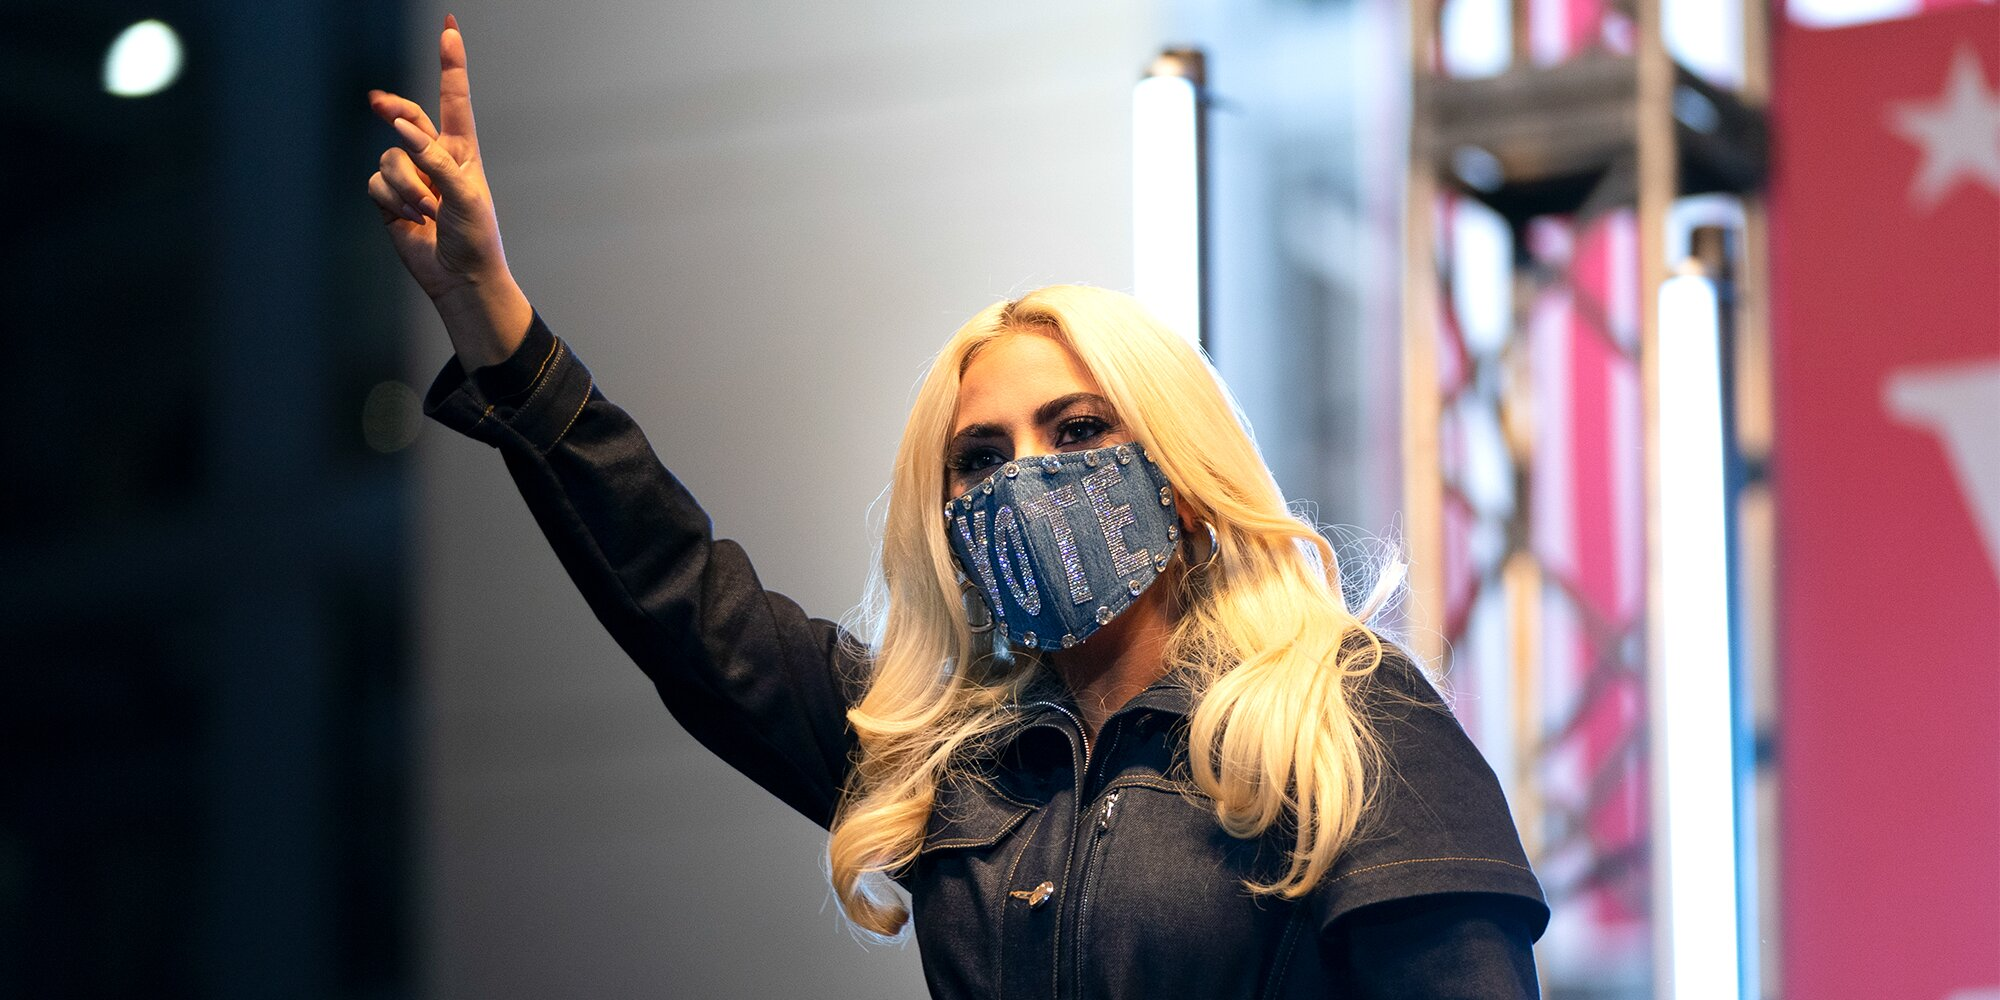 Lady Gaga says Joe Biden is her 'new Pennsylvania guy' in electric campaign performance